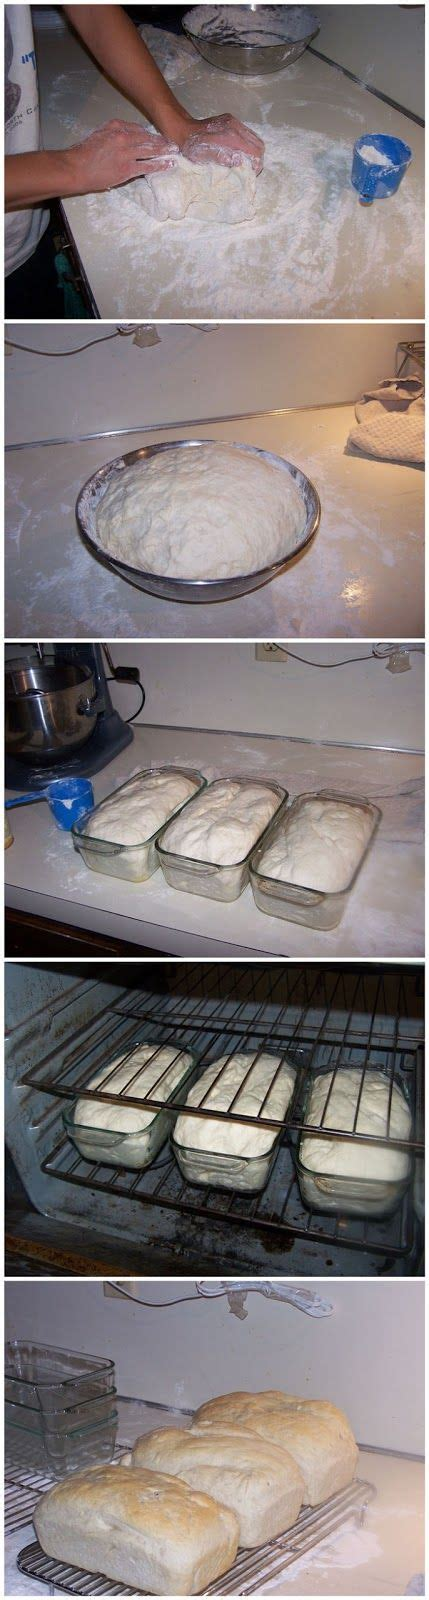 How To Make Bread Without A Bread Machine 1000 Images About How To Make Breads On How